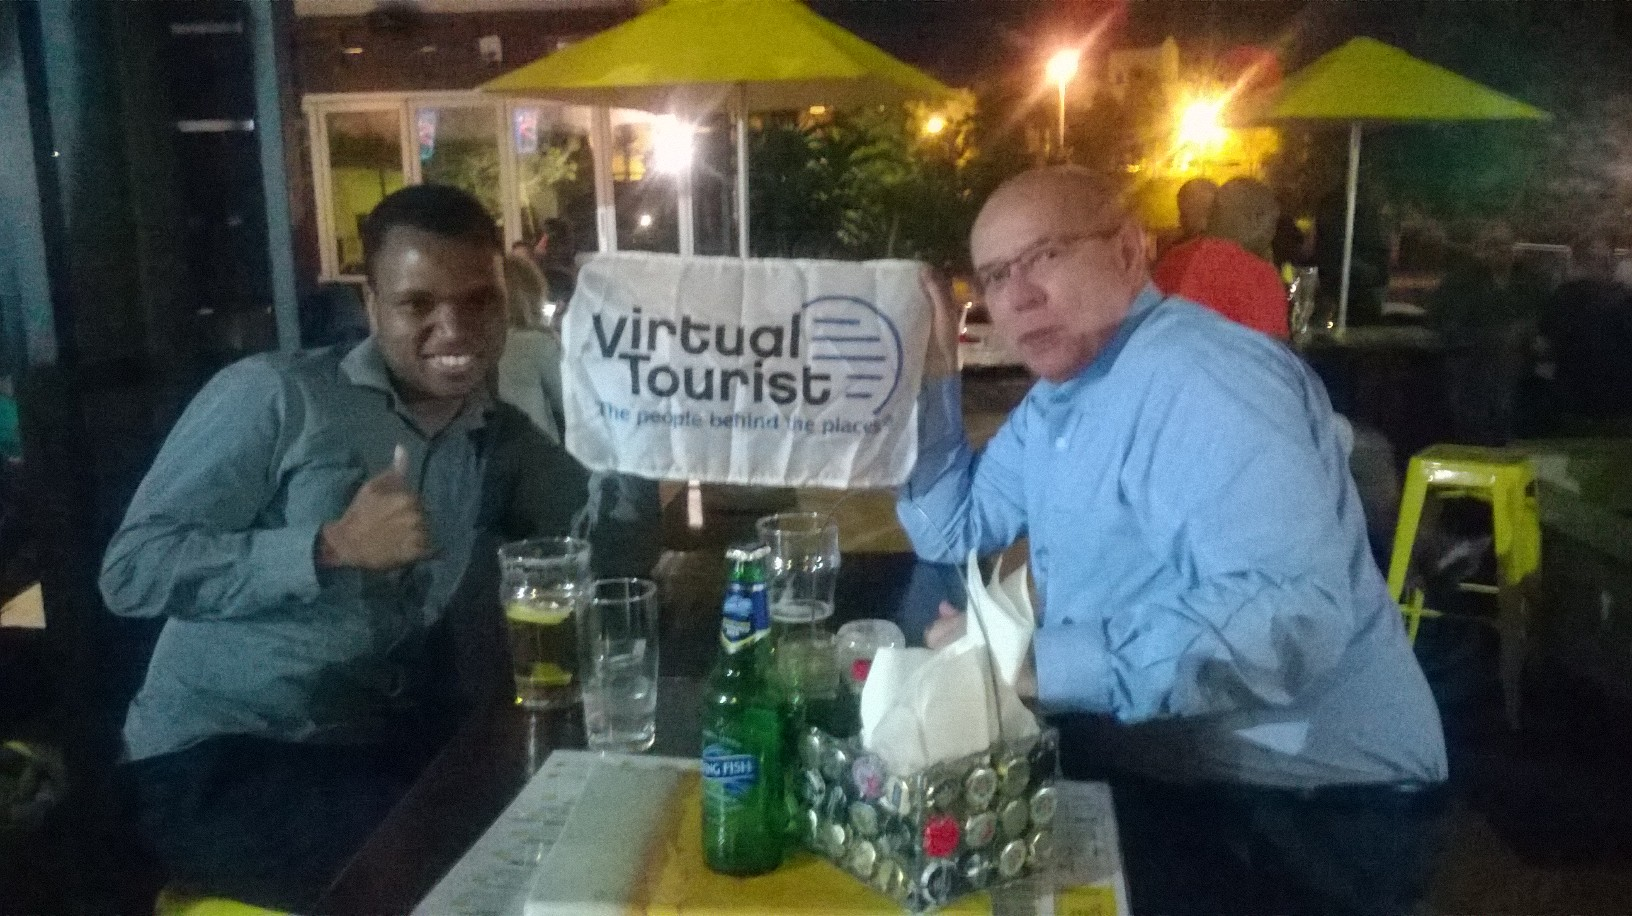 sa-fourways-beer-house-me-and-paul-vt-meeting-17sep15